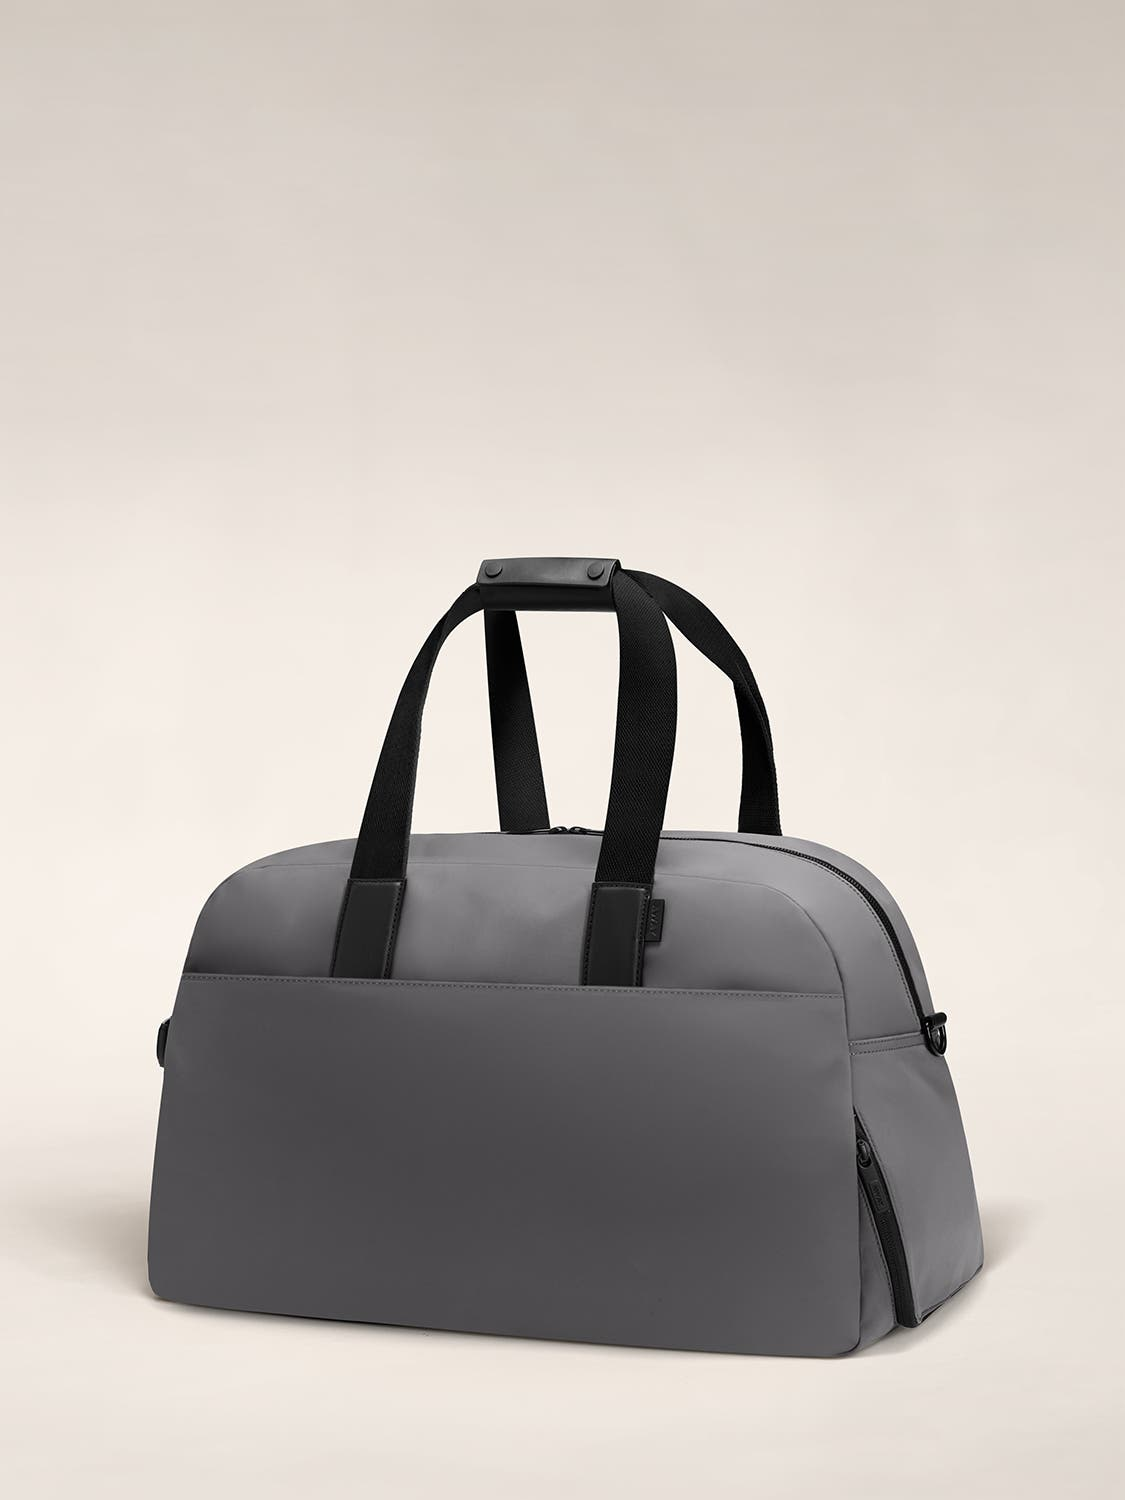 Angled view of an asphalt color nylon duffle bag with black leather trim.